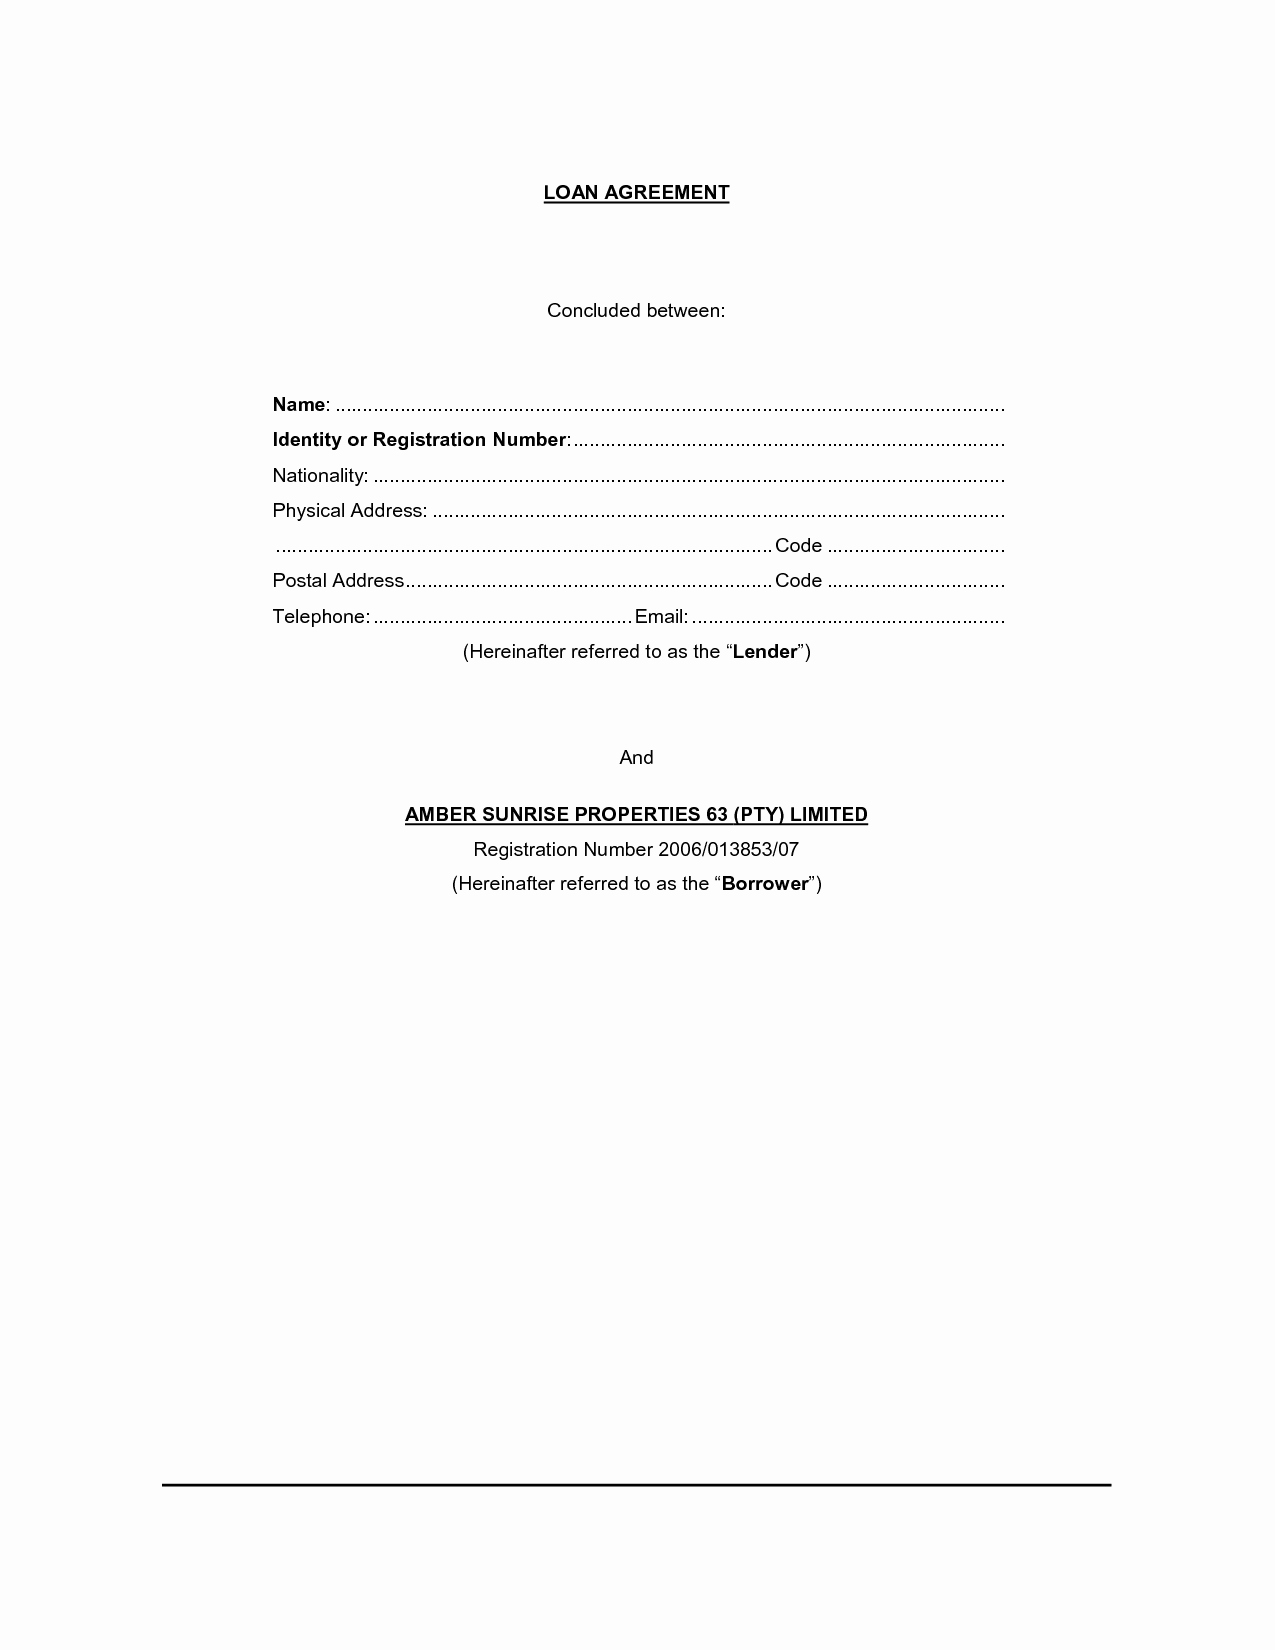 Advance Payment Agreement Letter Inspirational Free Printable Loan Contract Template form Generic